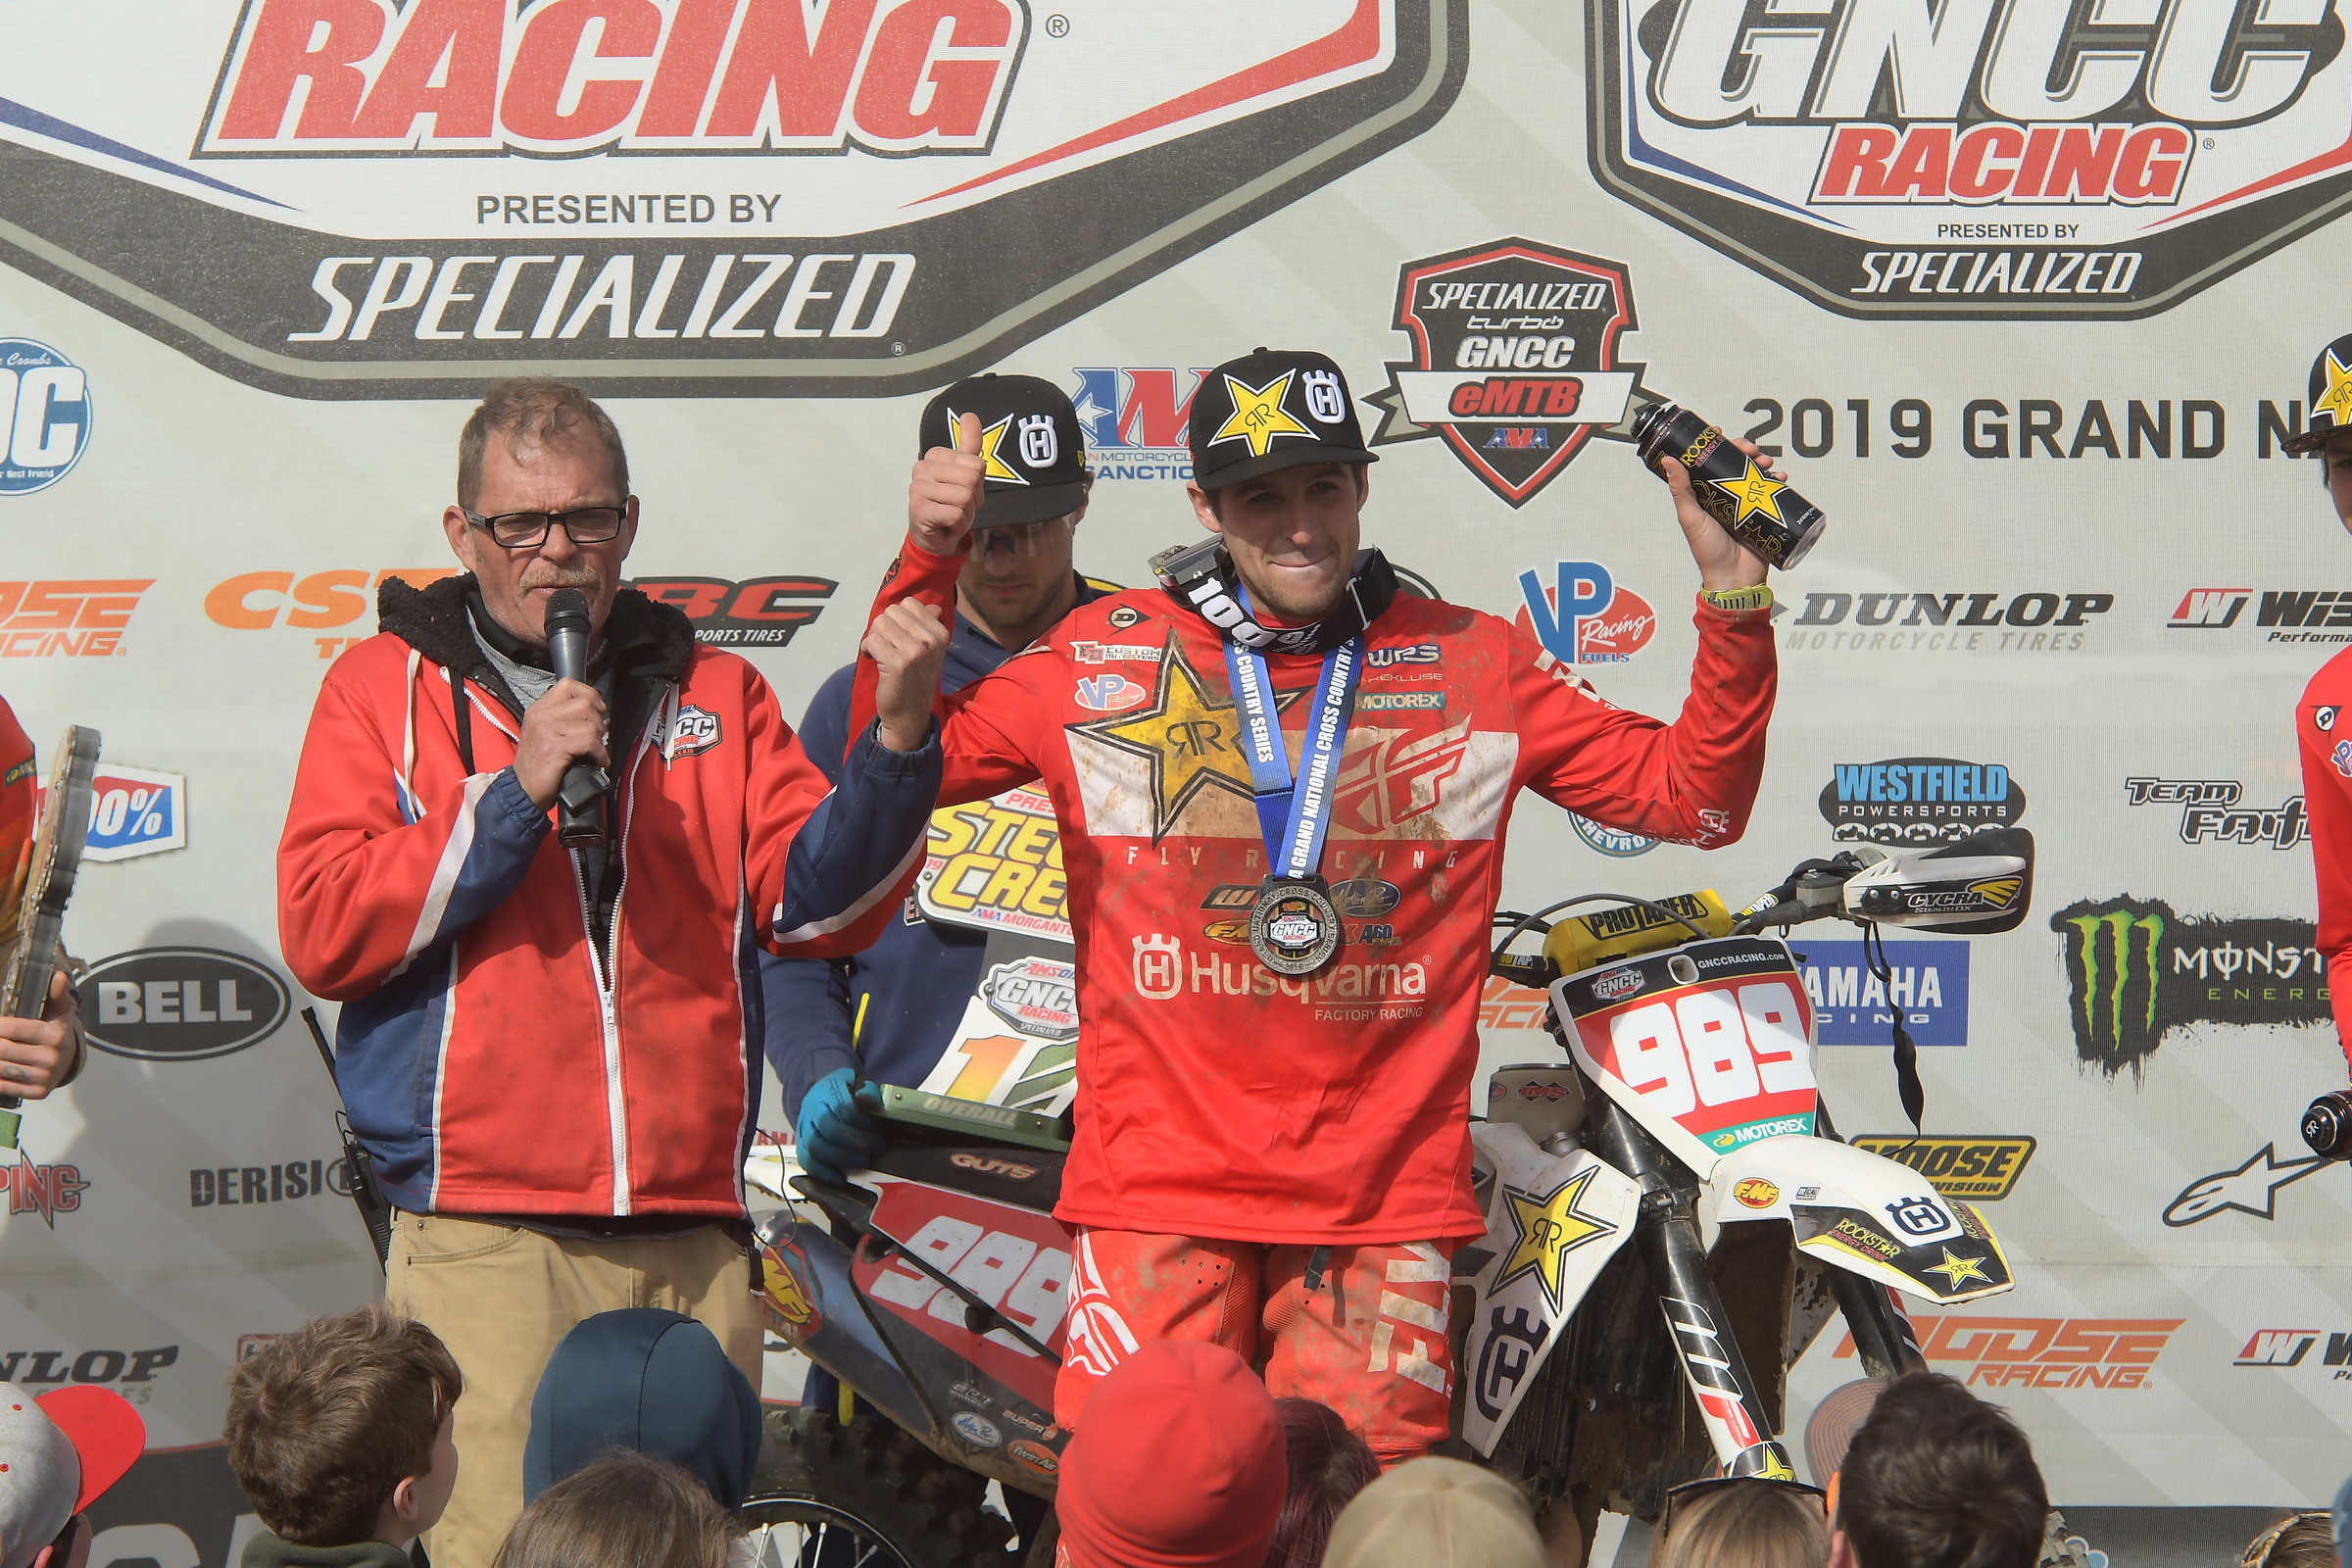 Thad Duvall celebrating his win on Sunday.